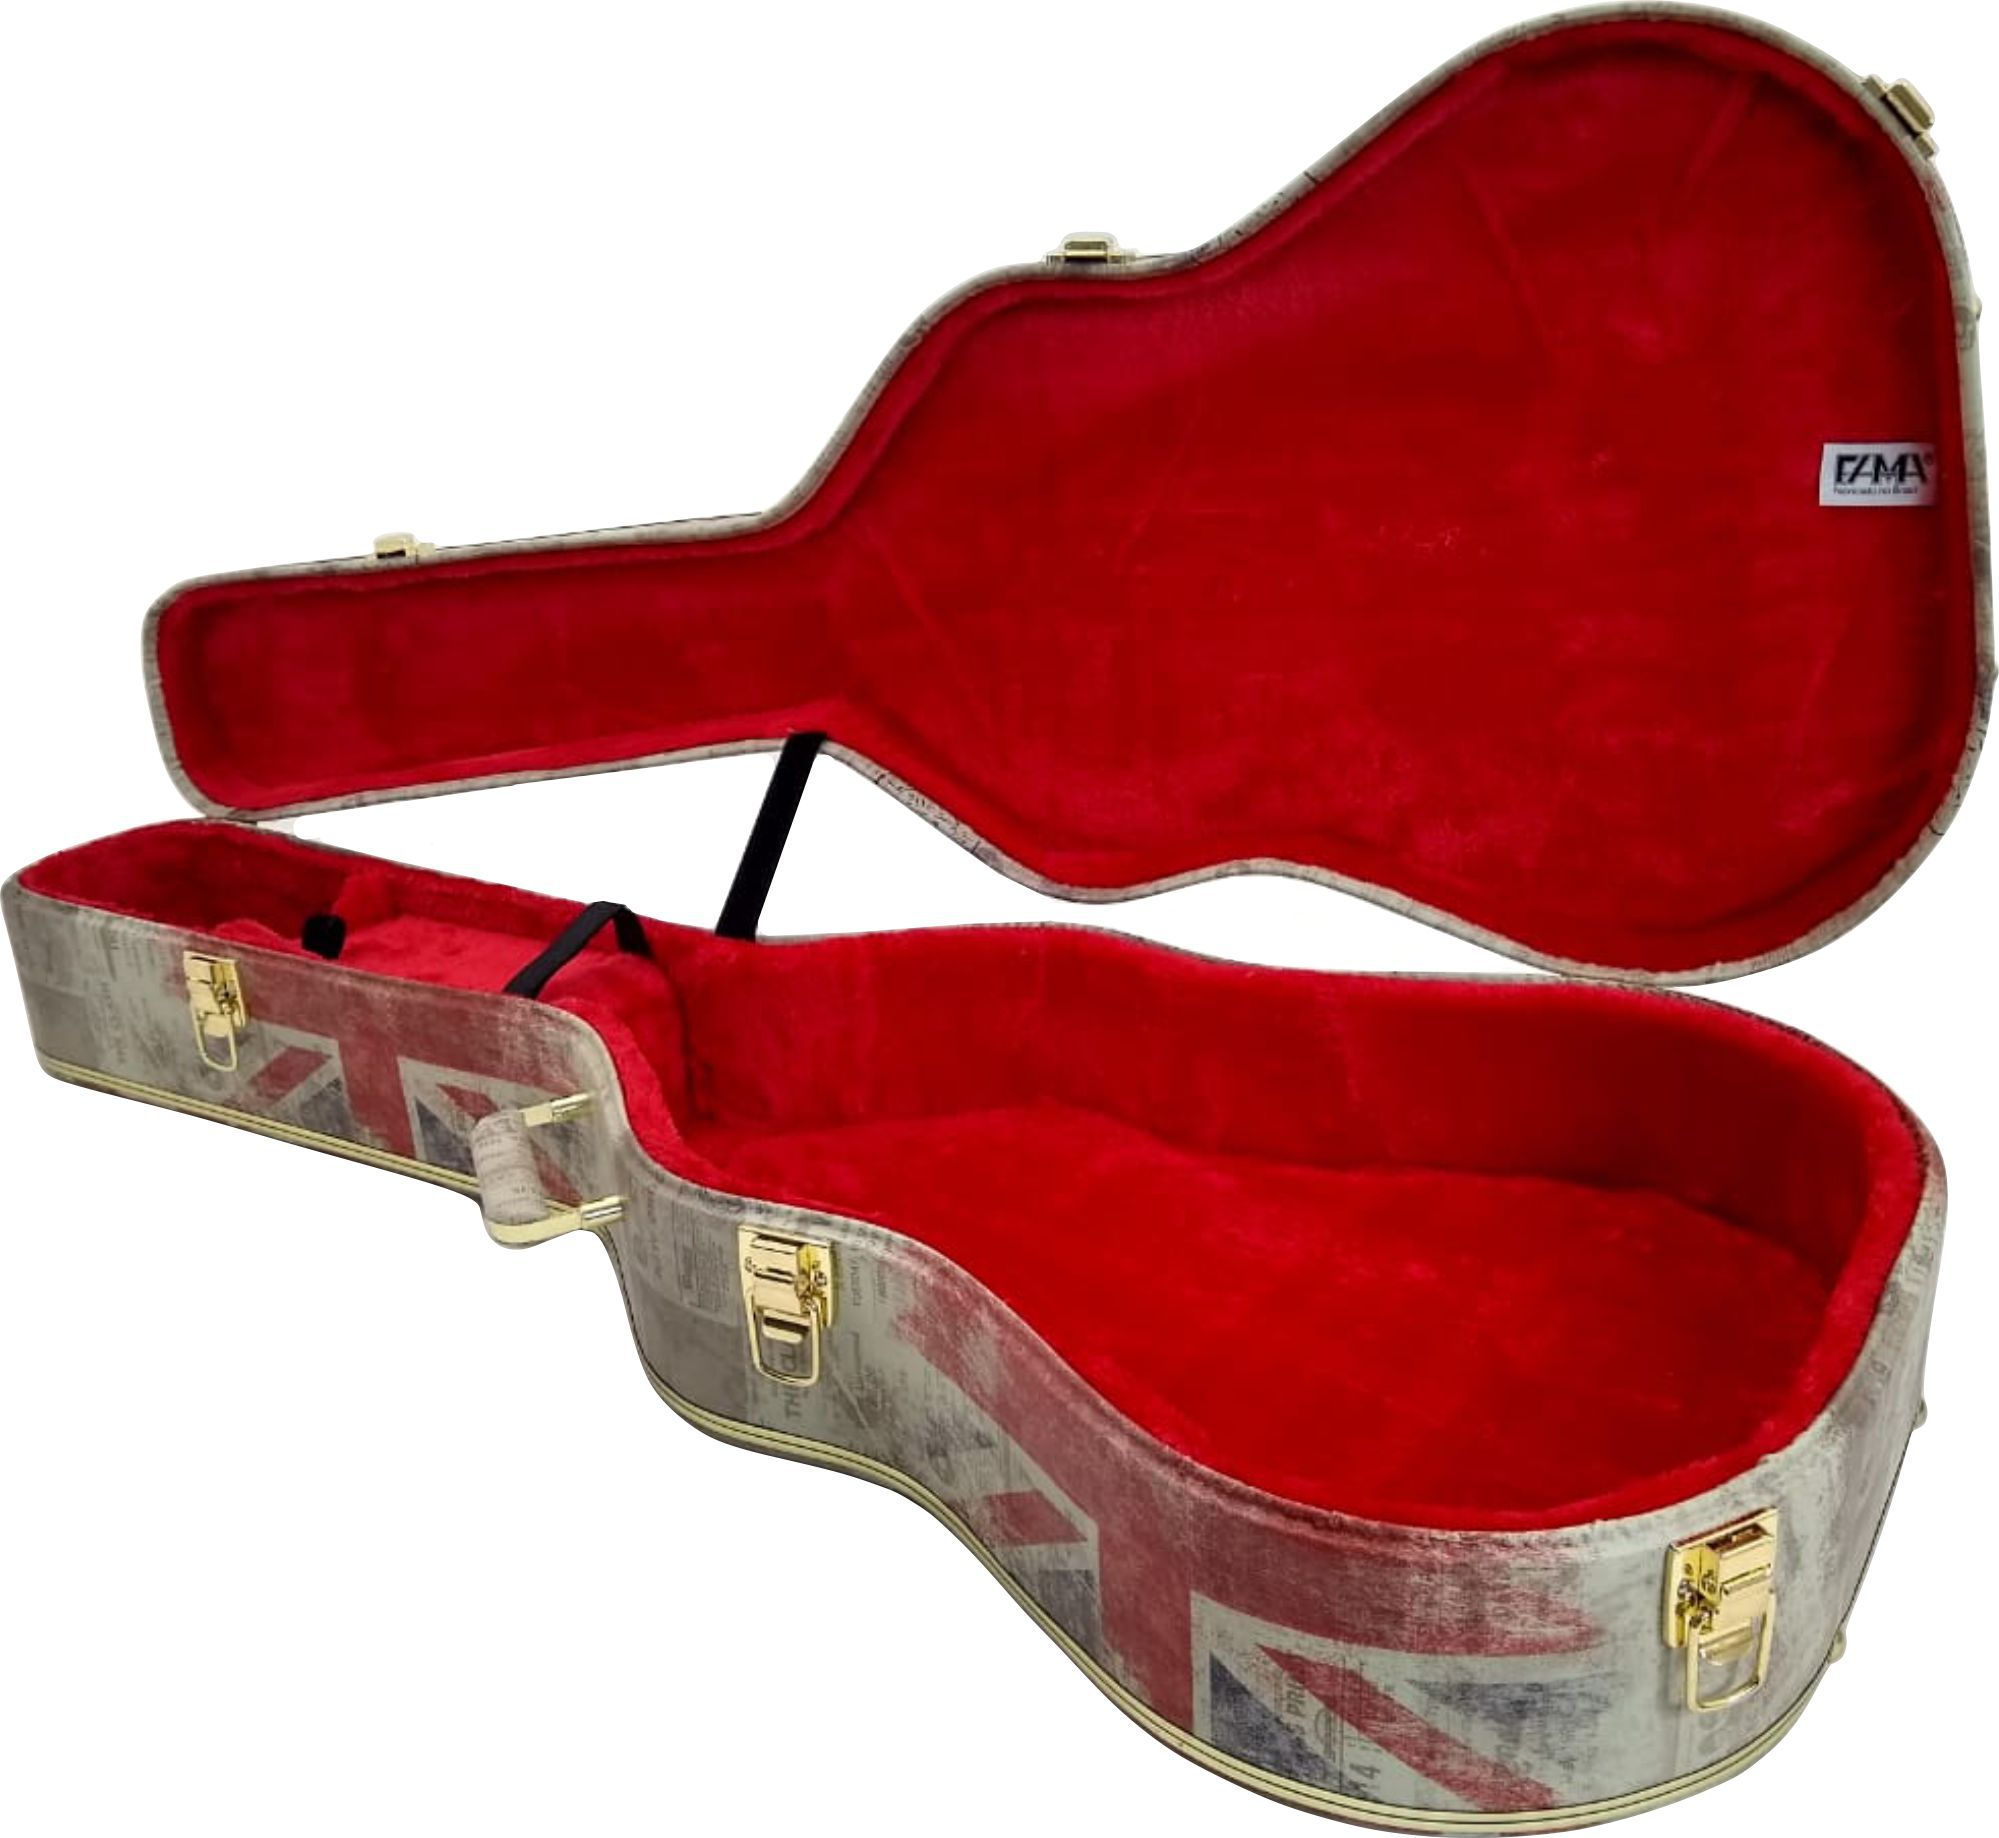 Case Para Guitarra Semi Acústica Couro Tema London